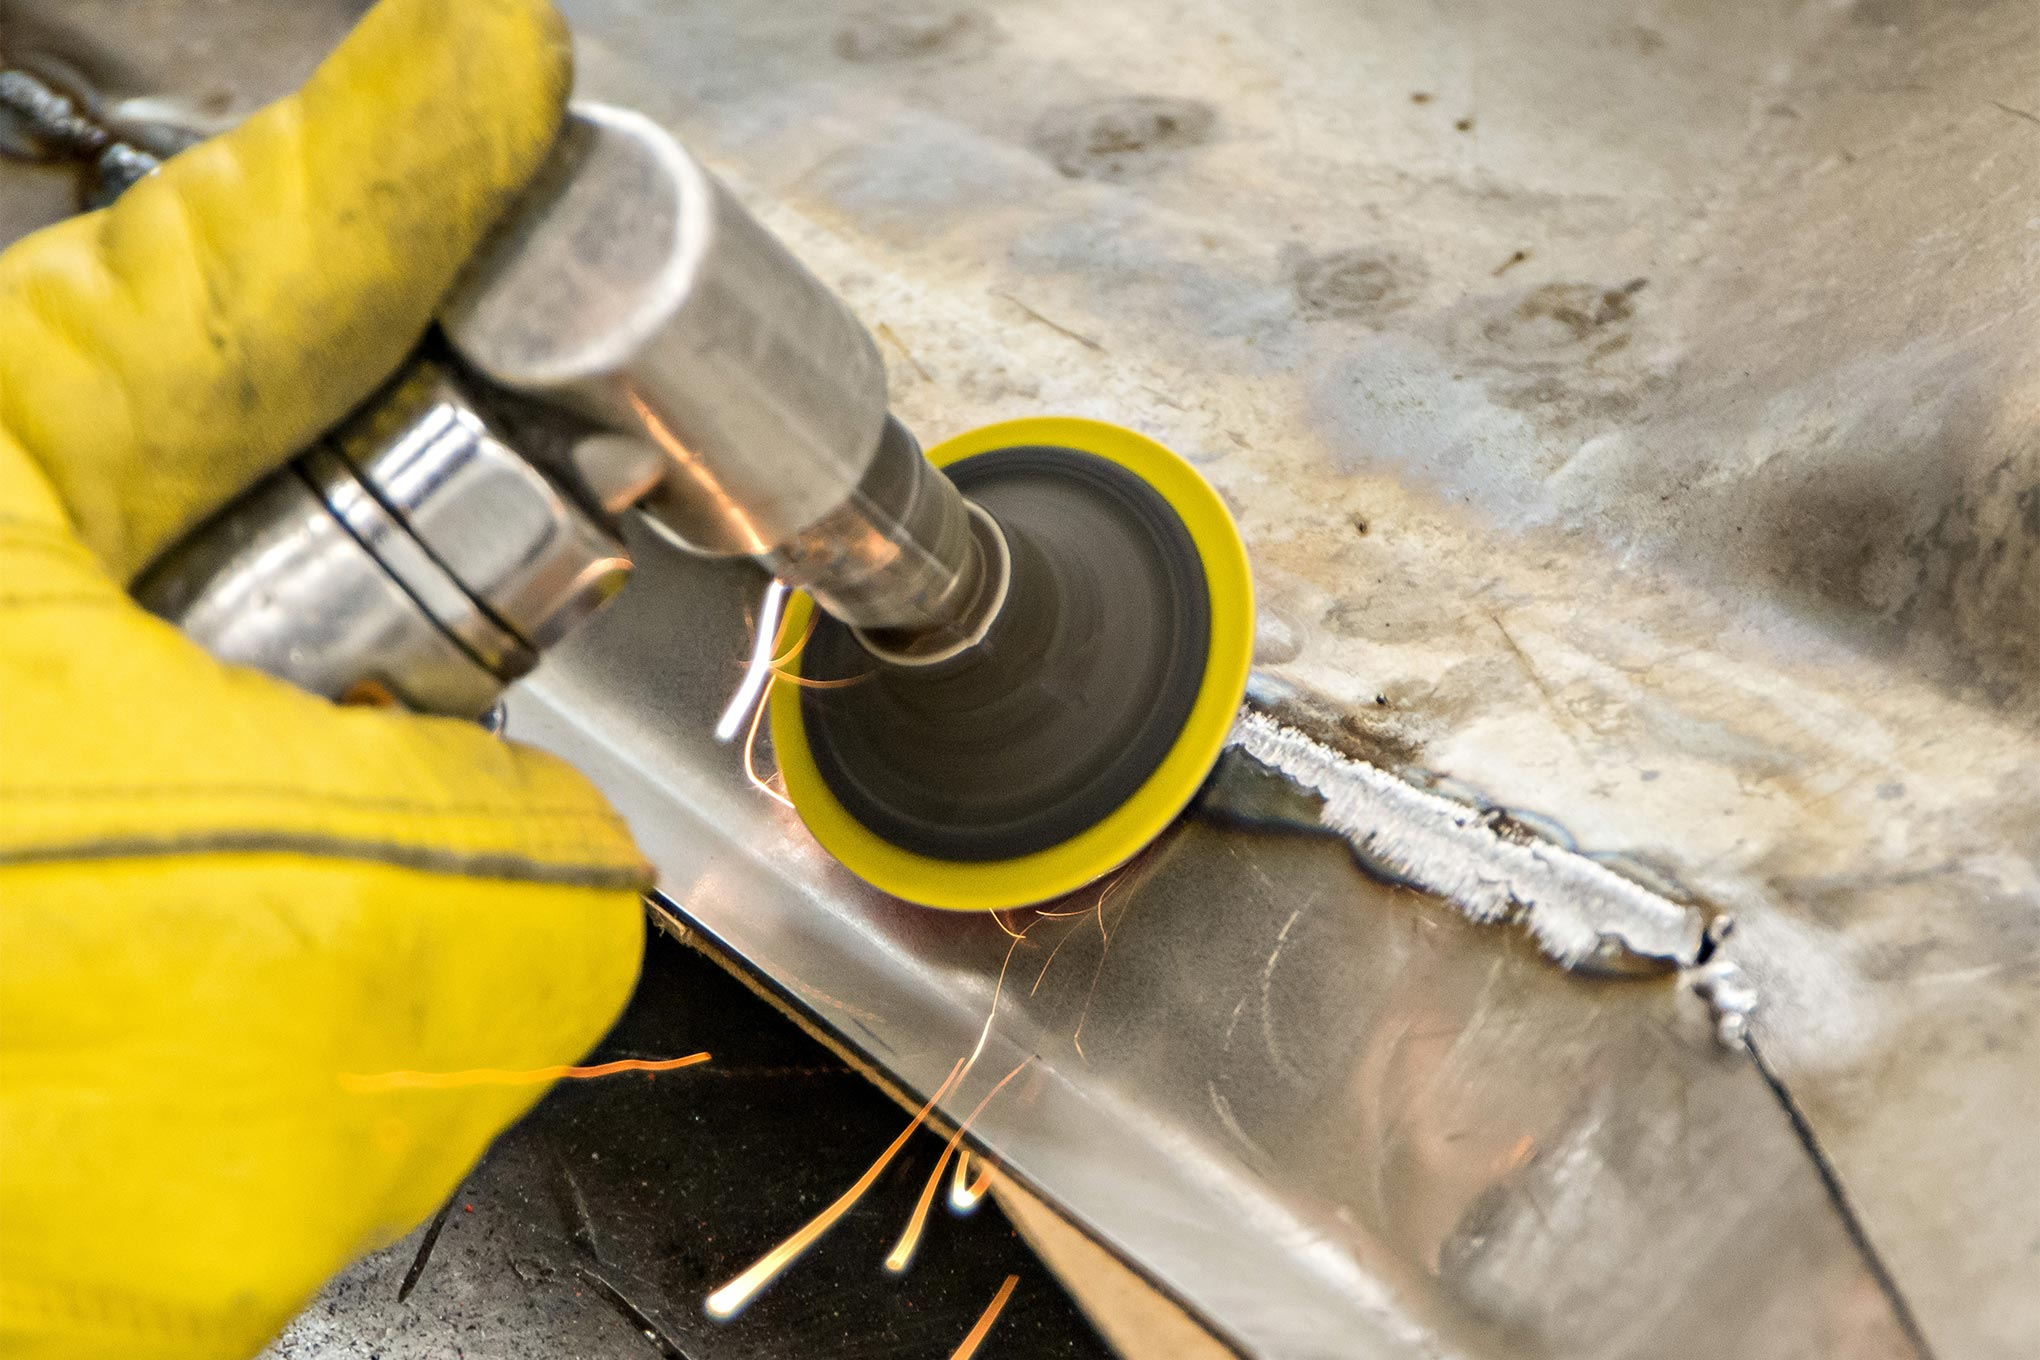 When the tack welds are all joined to together to form a solid seam, MCR uses a 36-grit disc to grind the welds flush. An 80-grit disc is then used to blend everything smooth.